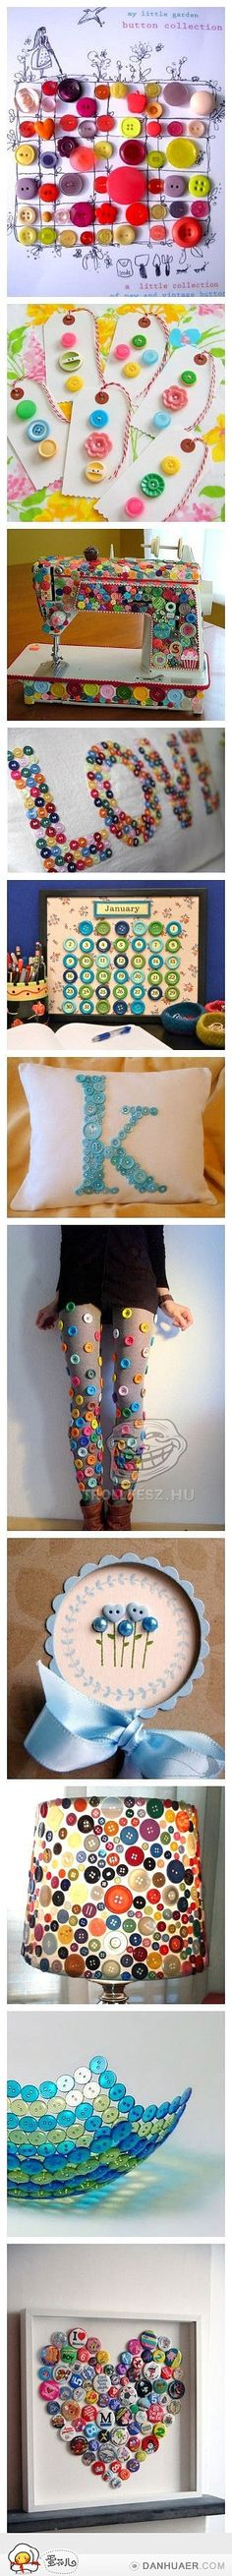 things to do with buttons! via @Emily Schoenfeld Pitts